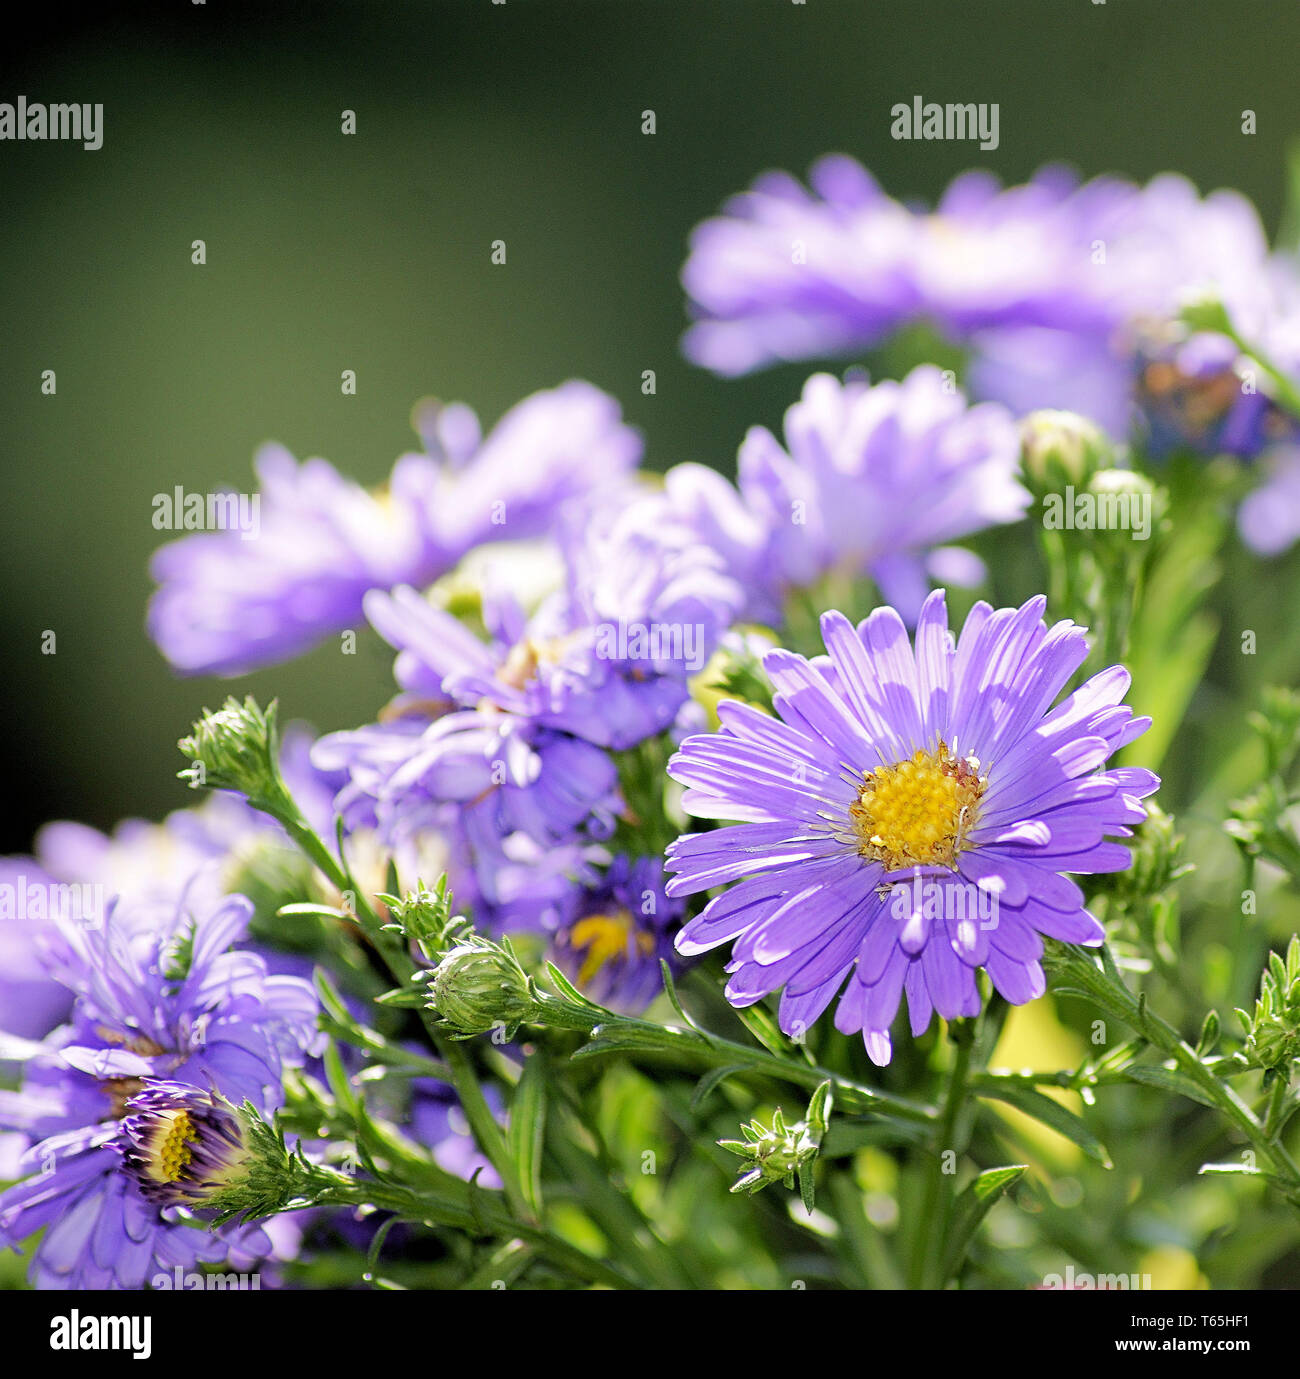 Aster family - Stock Image